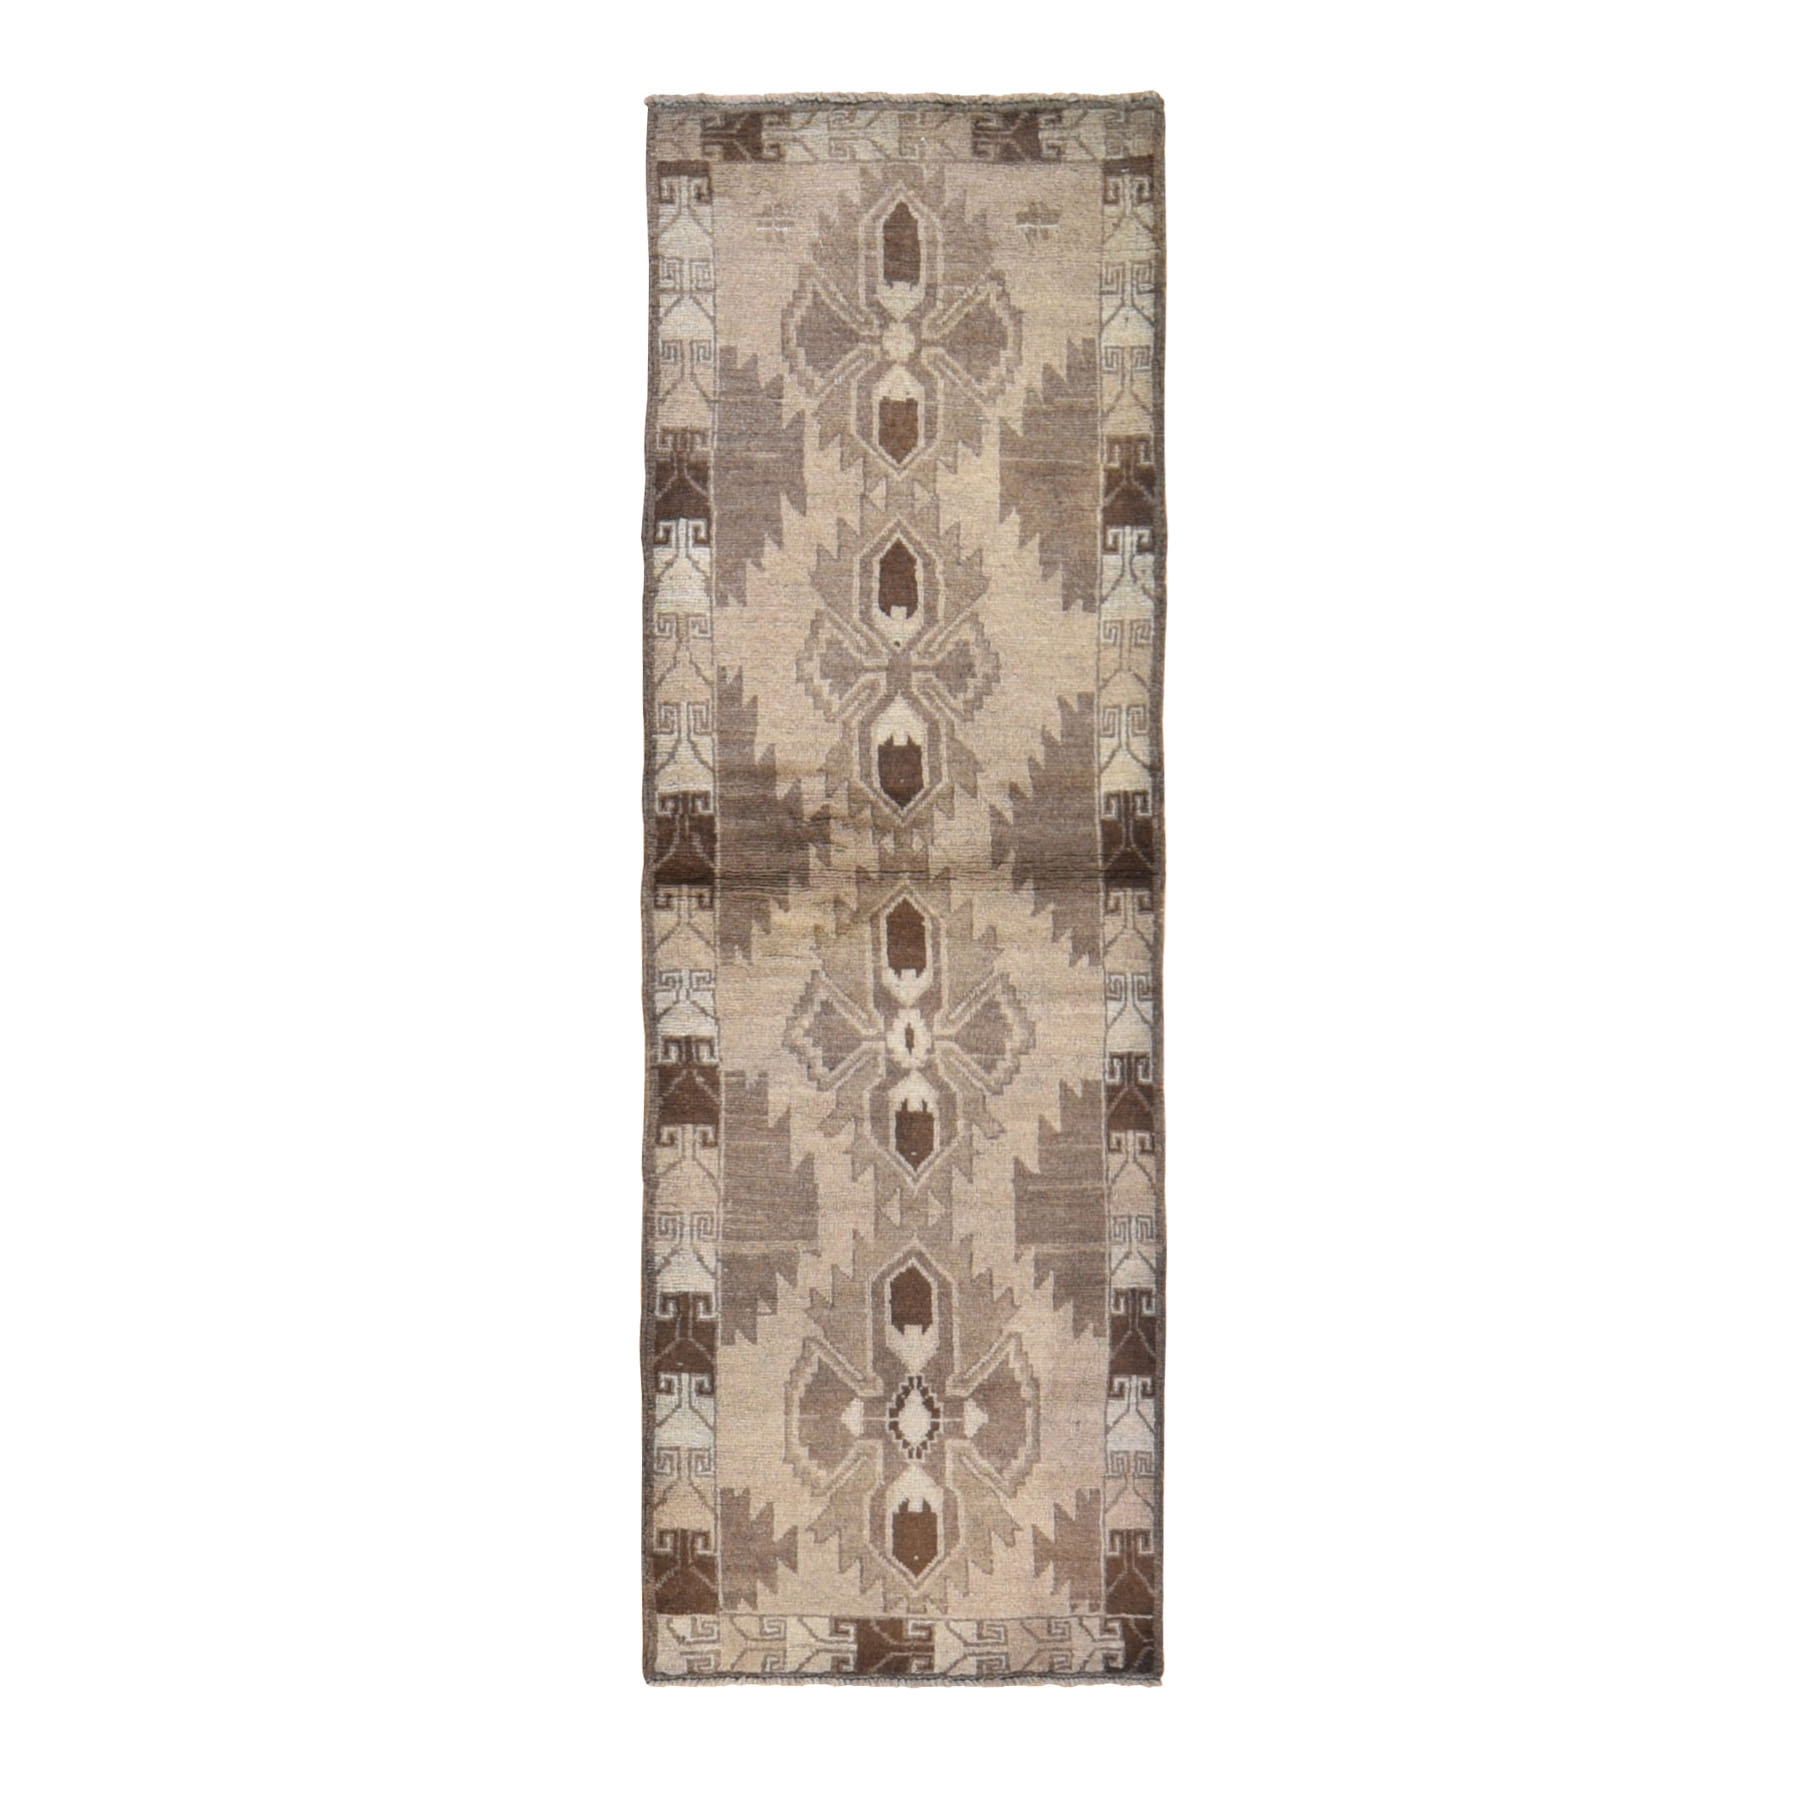 "2'5""x8' Washed Out Afghan Baluch With Natural Colors Pure Wool Runner Hand Knotted Oriental Rug"